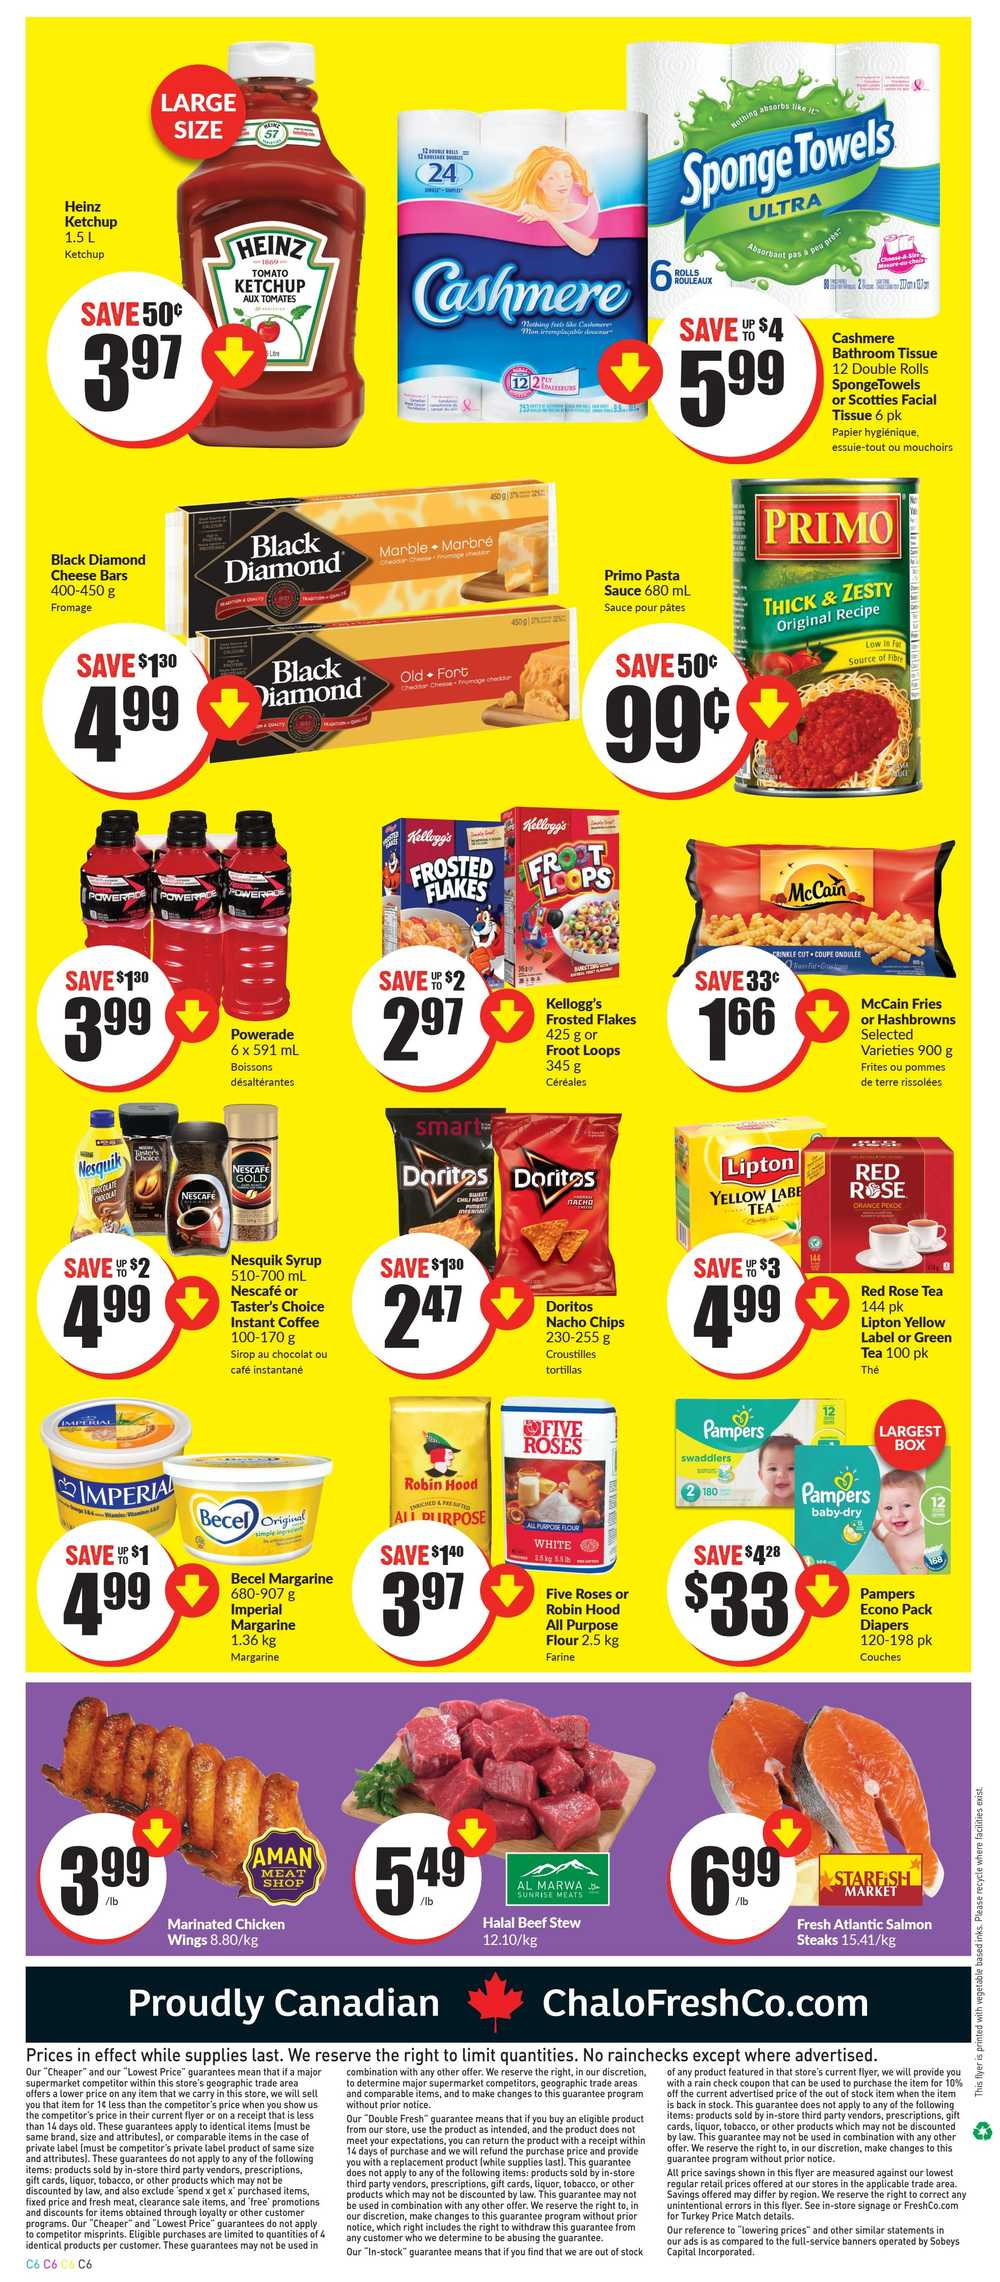 Chalo! FreshCo Flyer July 18 to 24